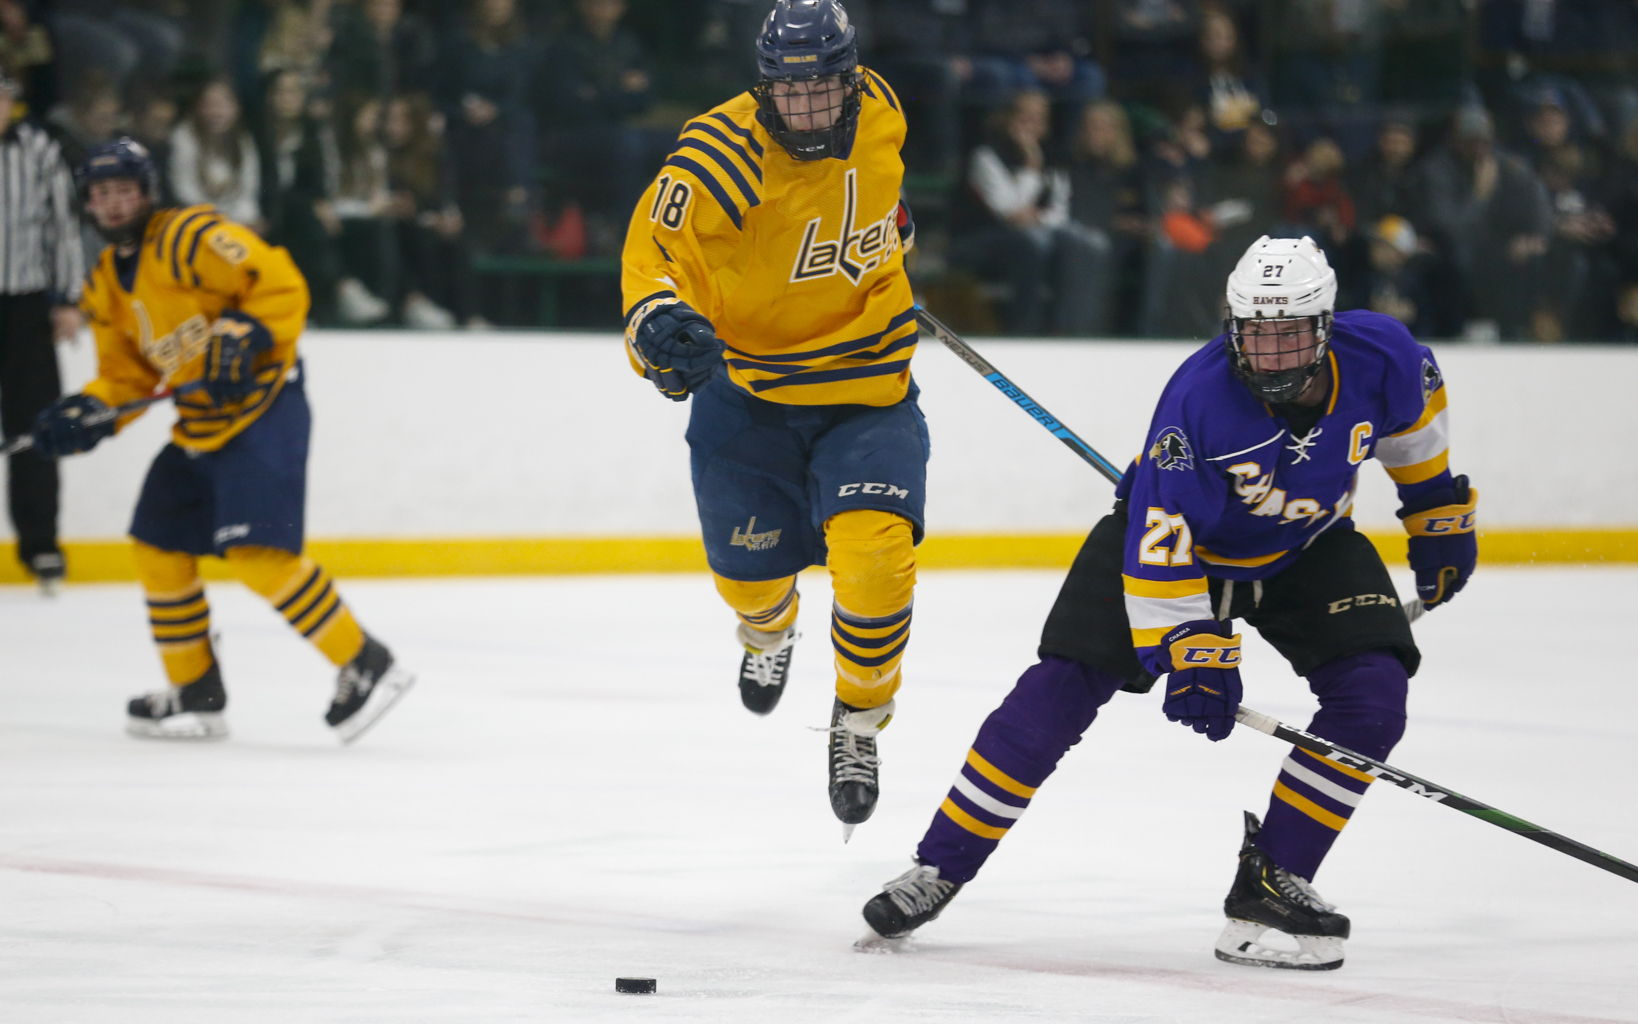 Prior Lake's Preston Lindholm (18) jumps around Chaska's William Magnuson (27) during the second period Saturday. The Lakers fell to the Hawks 4-1 in Edina. Photo by Jeff Lawler, SportsEngine